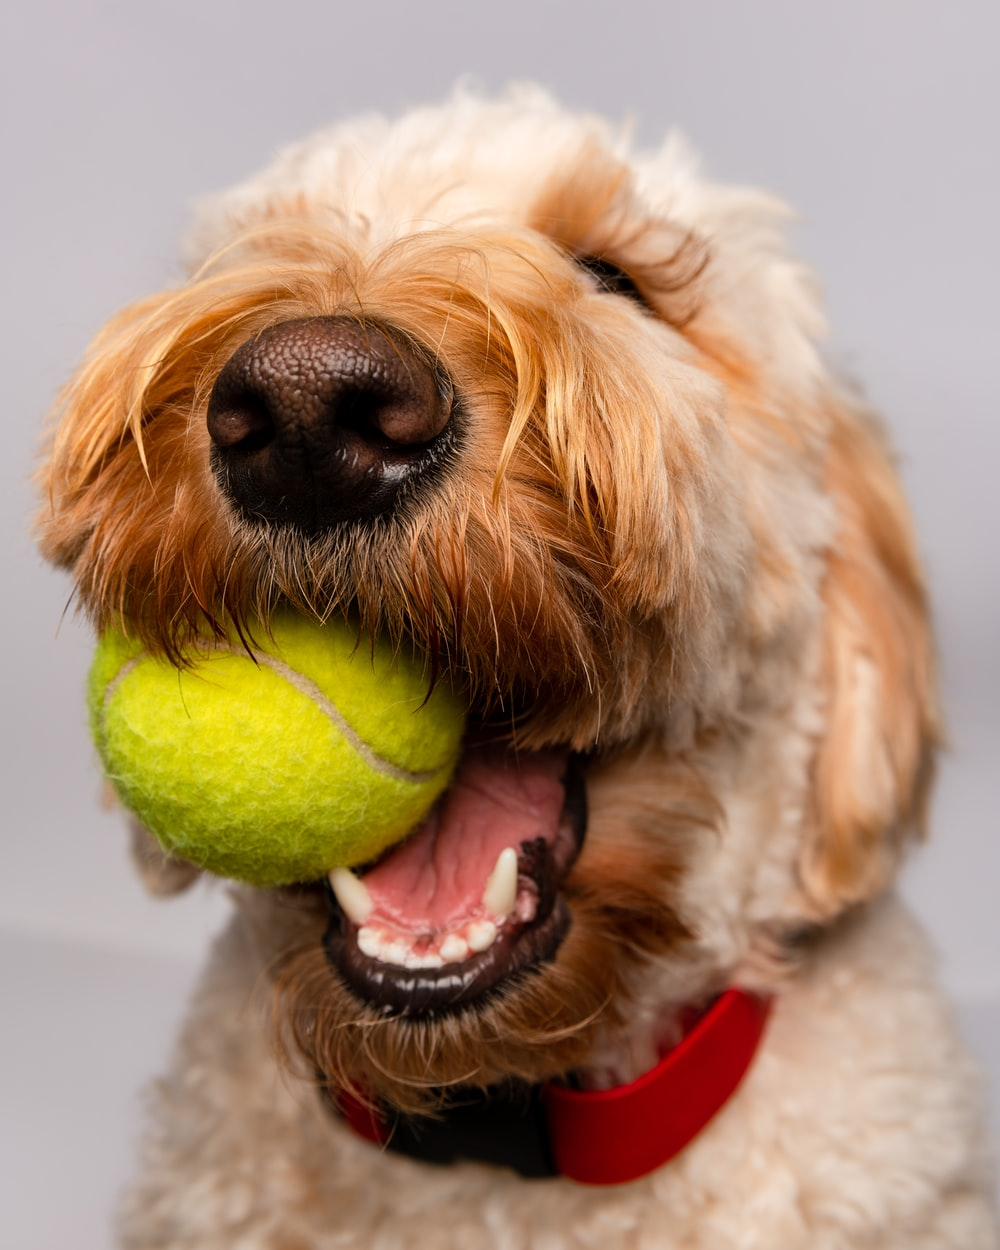 white and brown long coated dog playing tennis ball